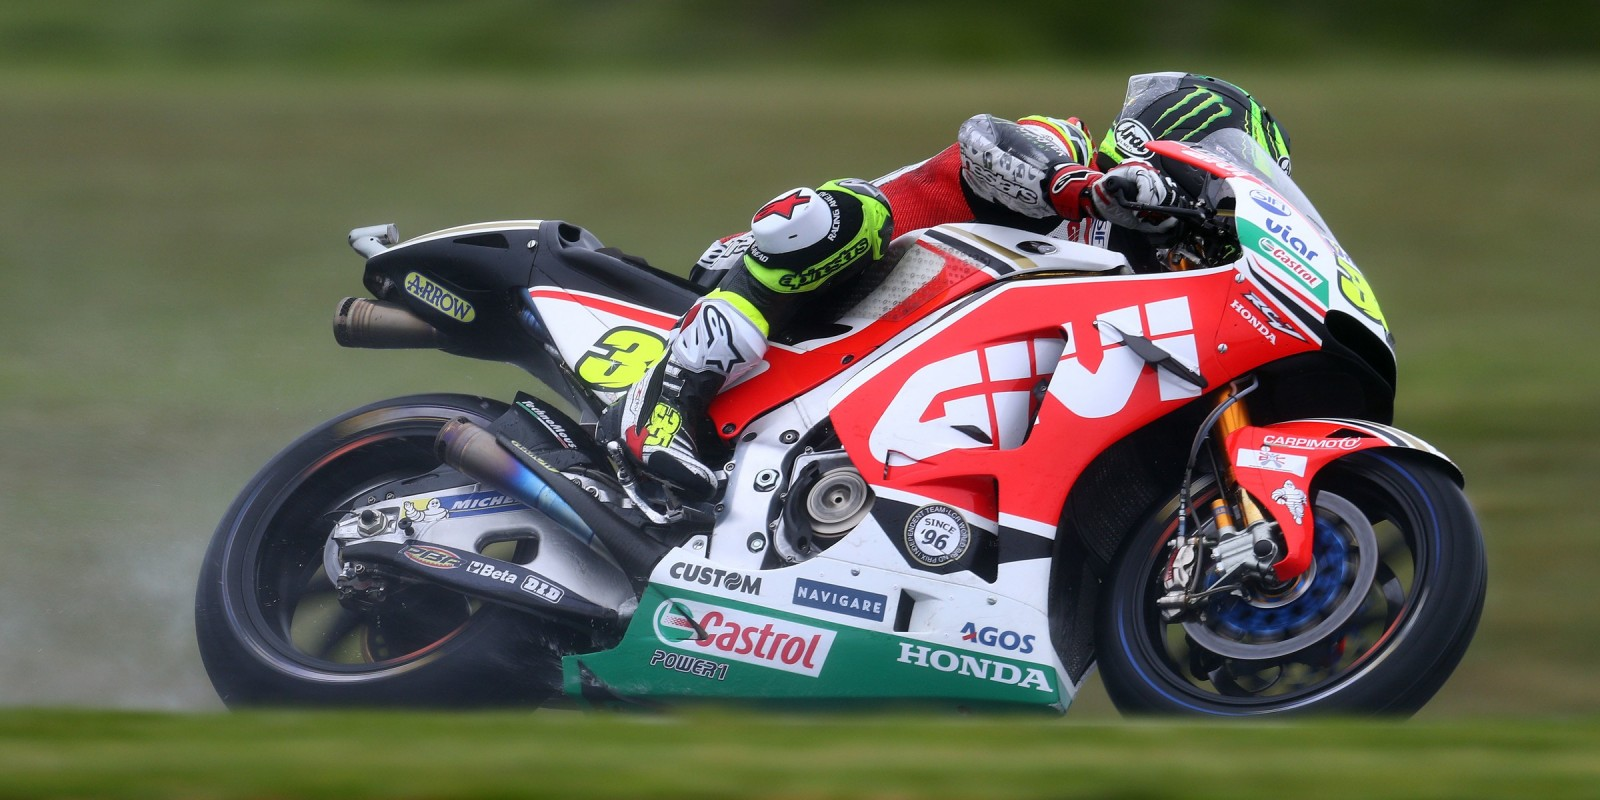 Saturday's action shots of MotoGP Phillip Island in Australia